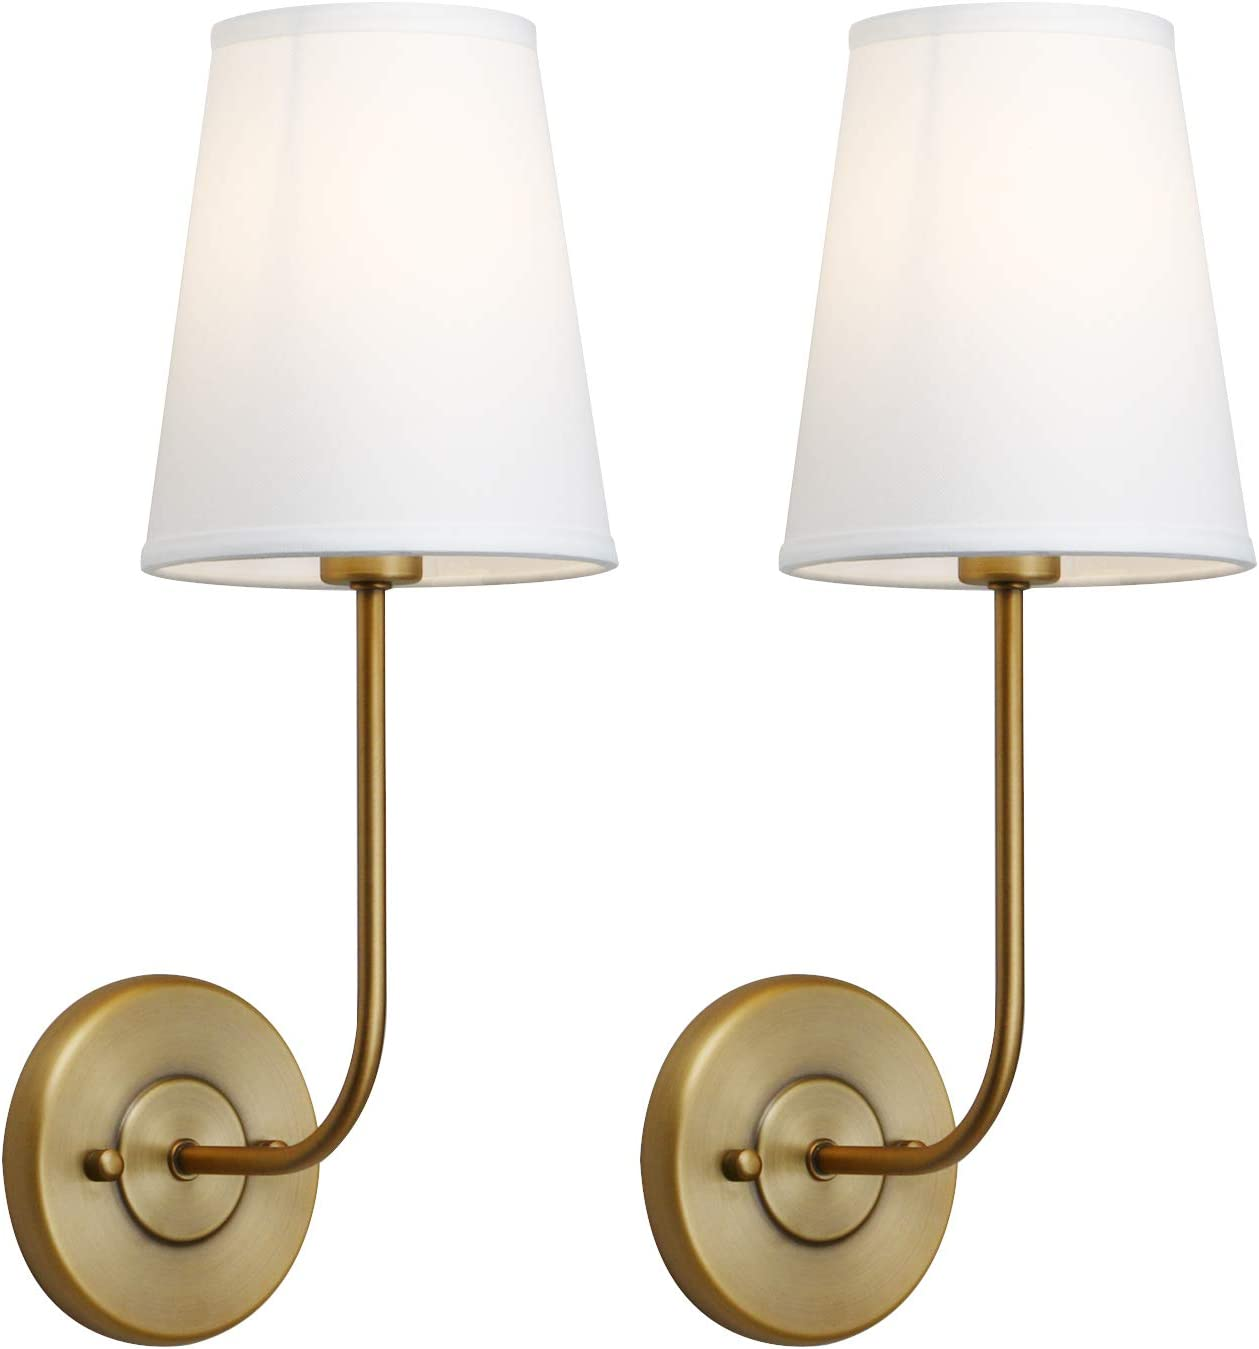 Pathson Industrial Wall Sconce with White Fabric Lamp Shade, 1-Light Vintage Indoor Wall Light Fixtures Suitable for Bedroom Living Room, Antique Brass Finish 2-Pack (Antique)